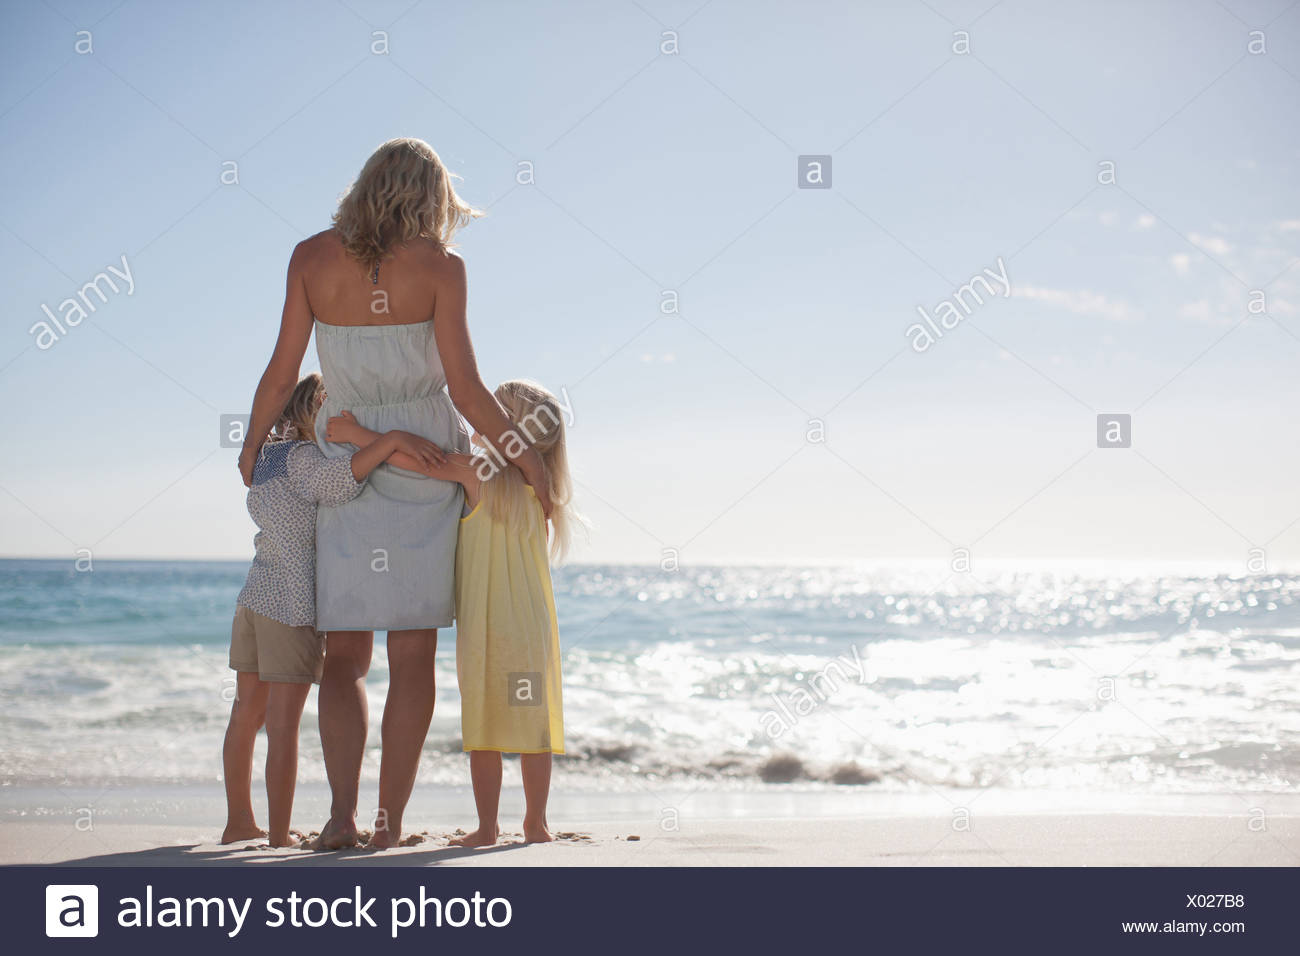 Mother and daughters on beach looking at ocean - Stock Image